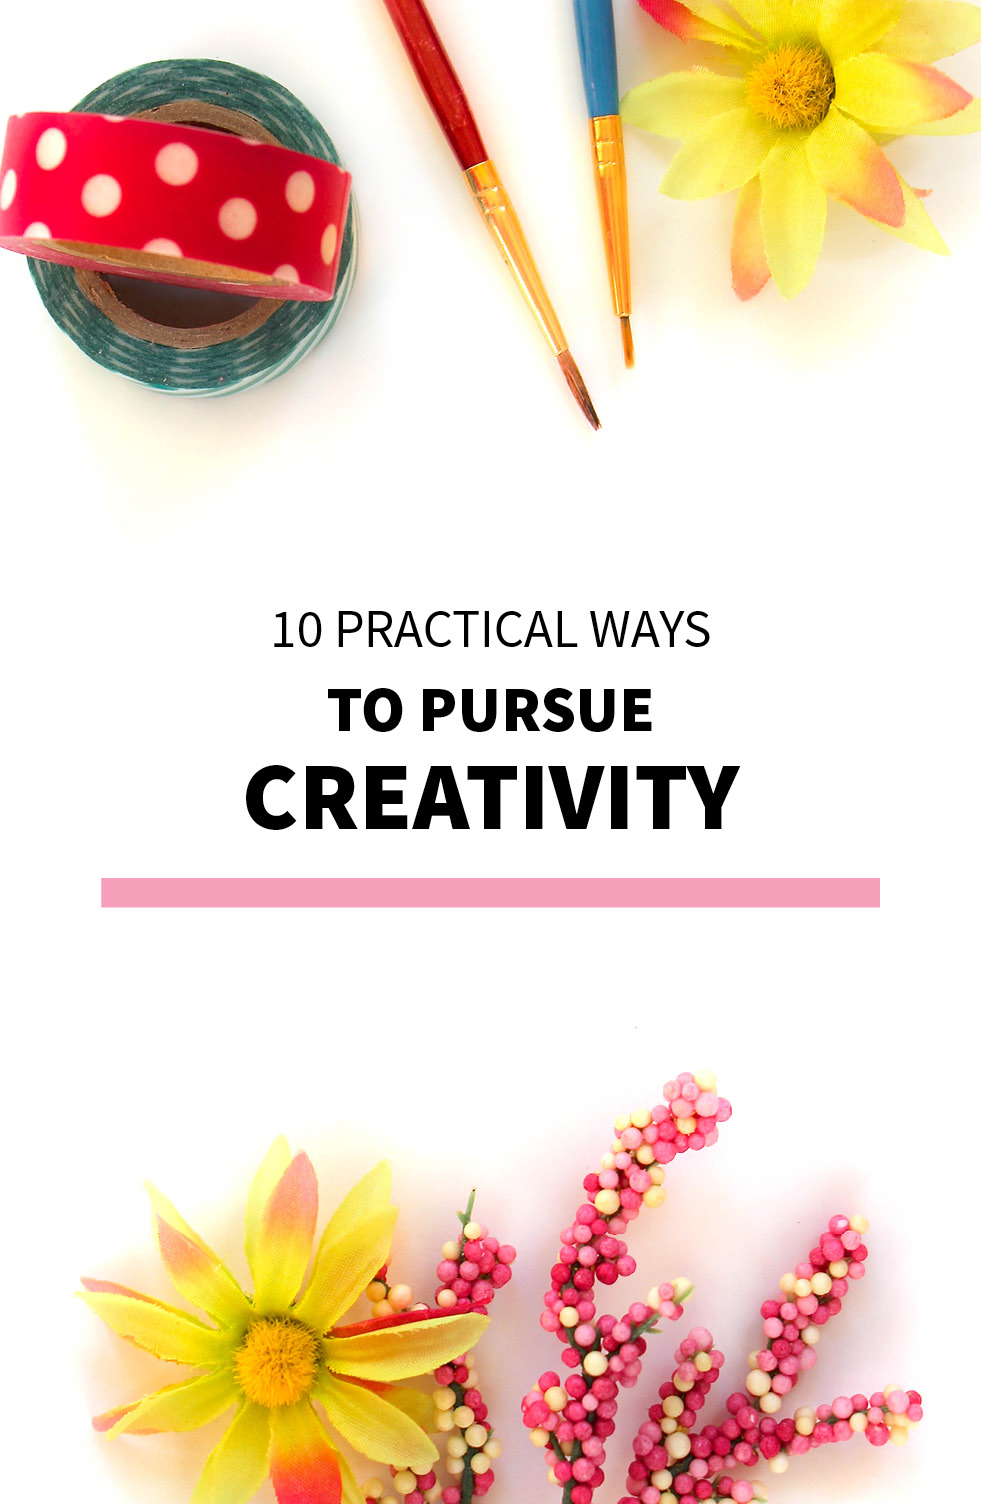 10 Practical Ways to Pursue Creativity